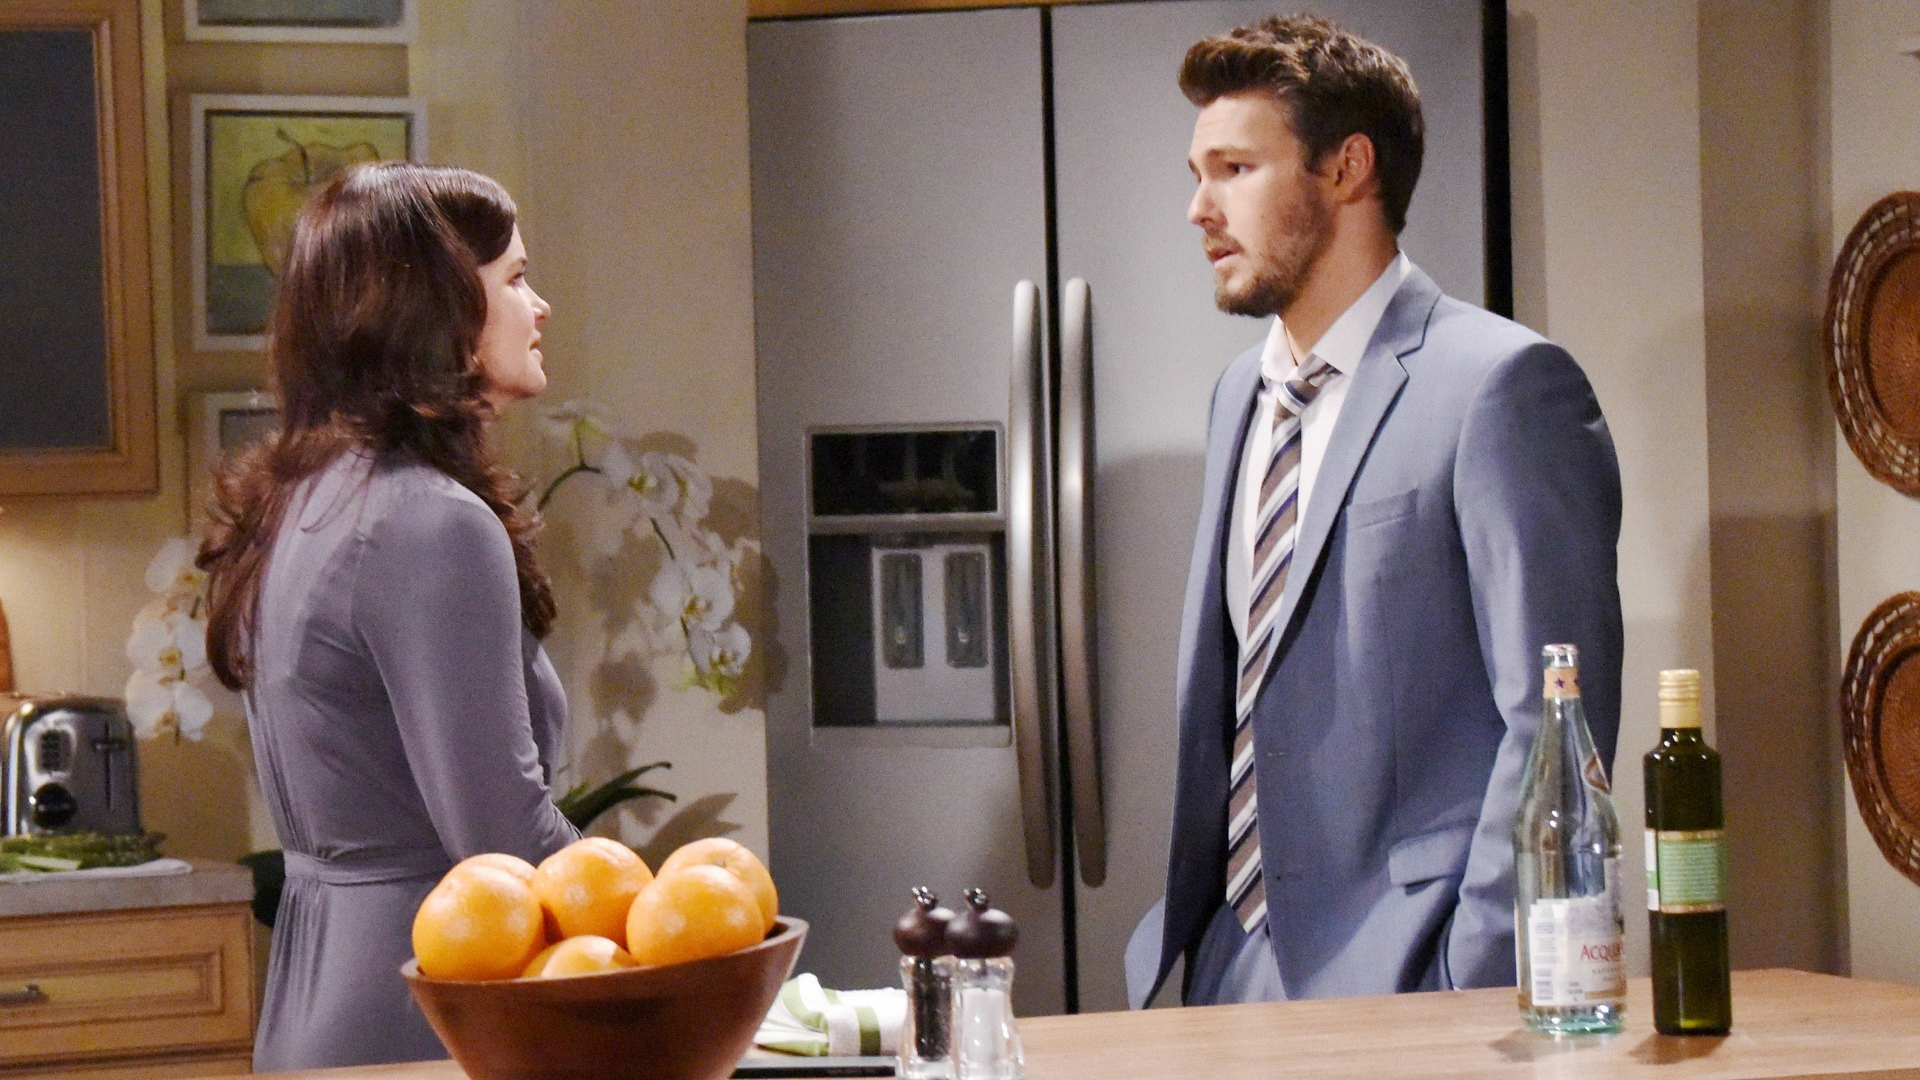 Katie seeks answers from Liam by expressing to him her concern and insecurities regarding Bill.